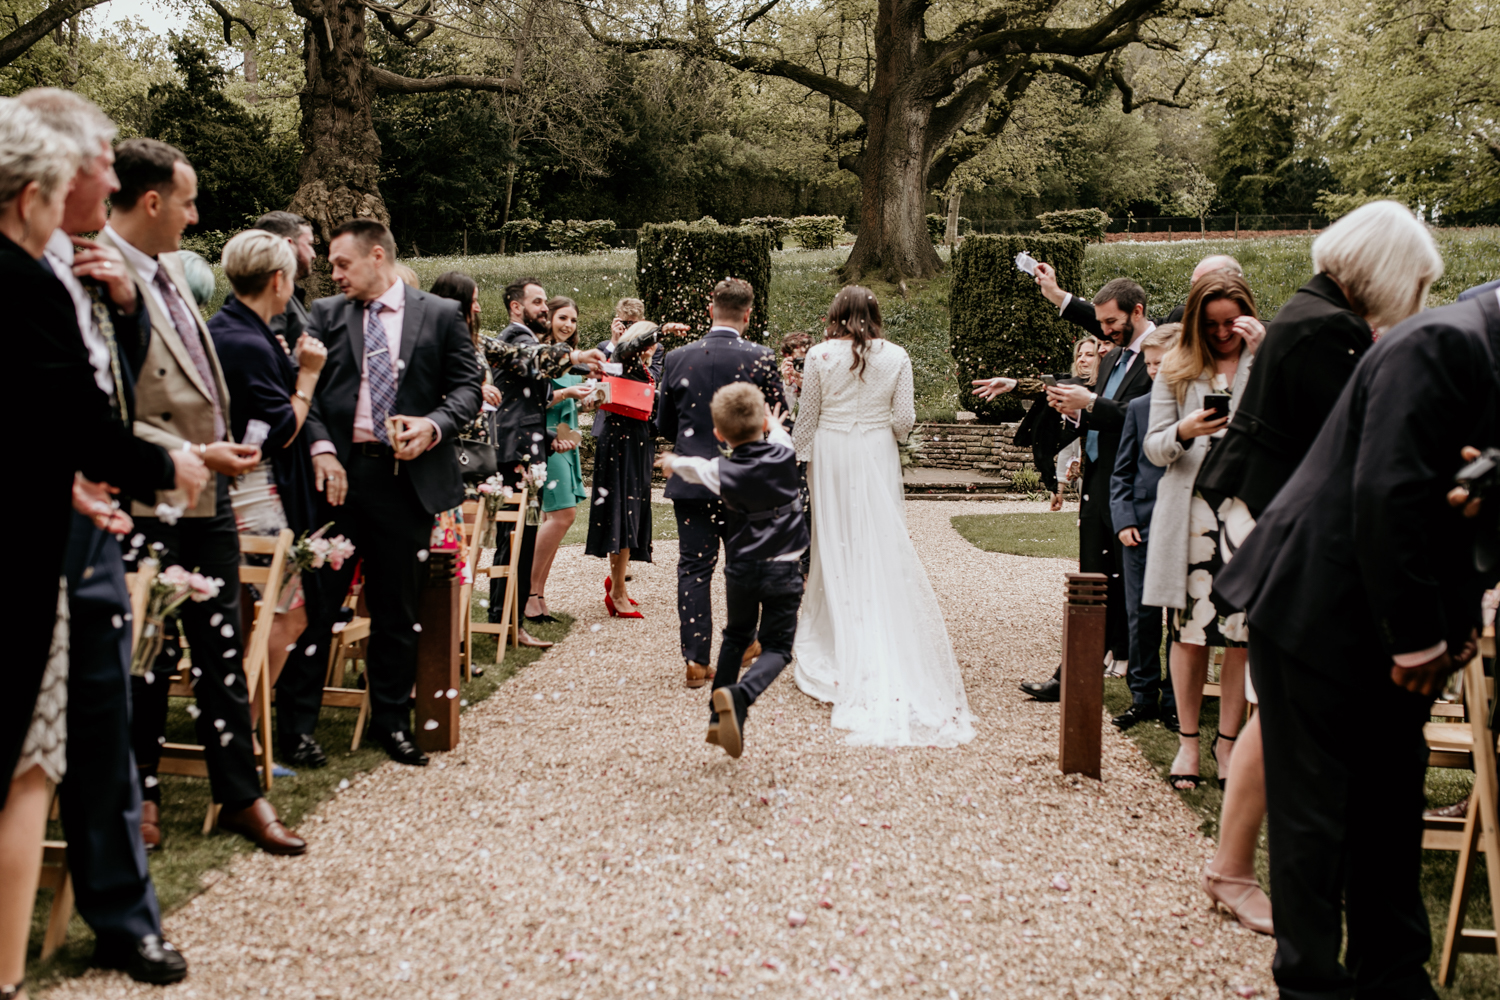 little boy throwing confetti behind bride and groom at Coombe Lodge Blagdon wedding venue